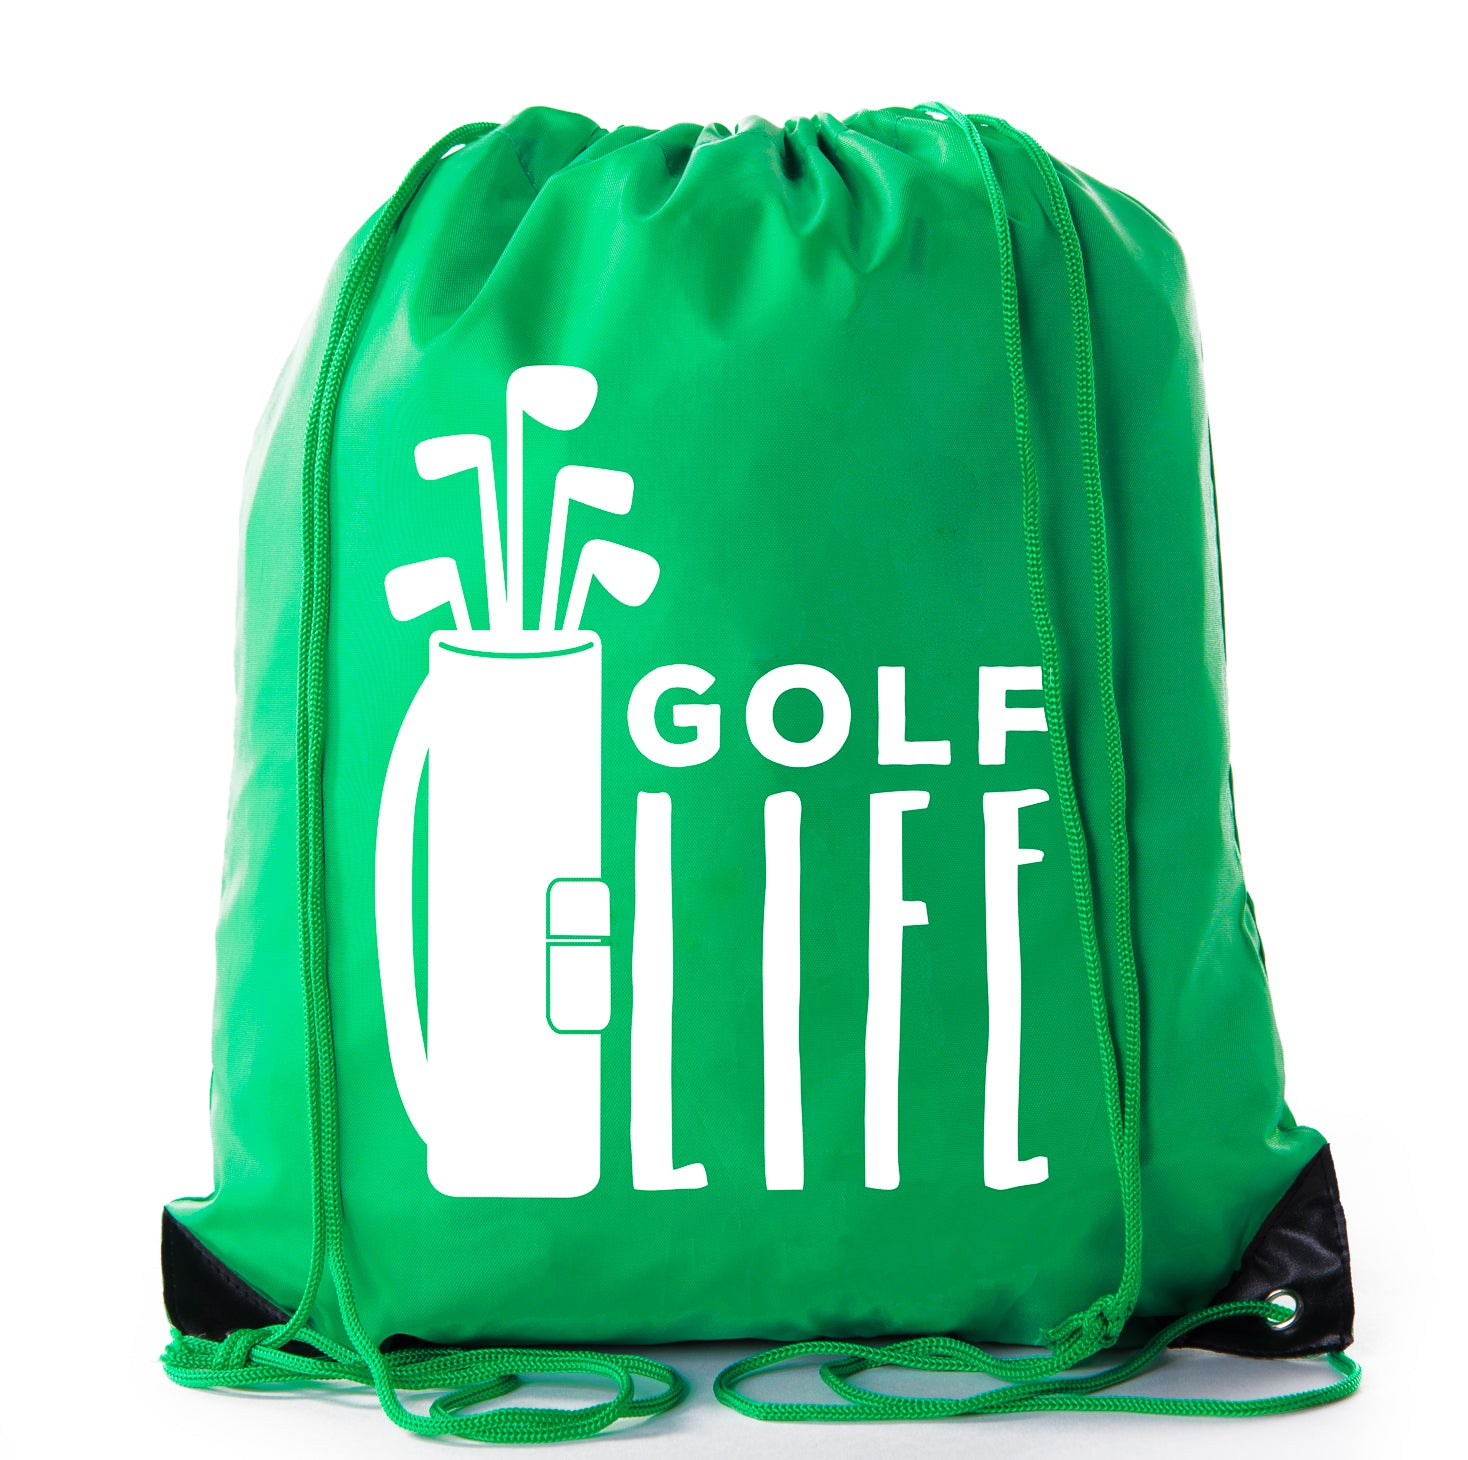 Accessory - Mato & Hash Golf Bags, Drawstring Golf Bags For Leagues, Parties And More! - Golf Life